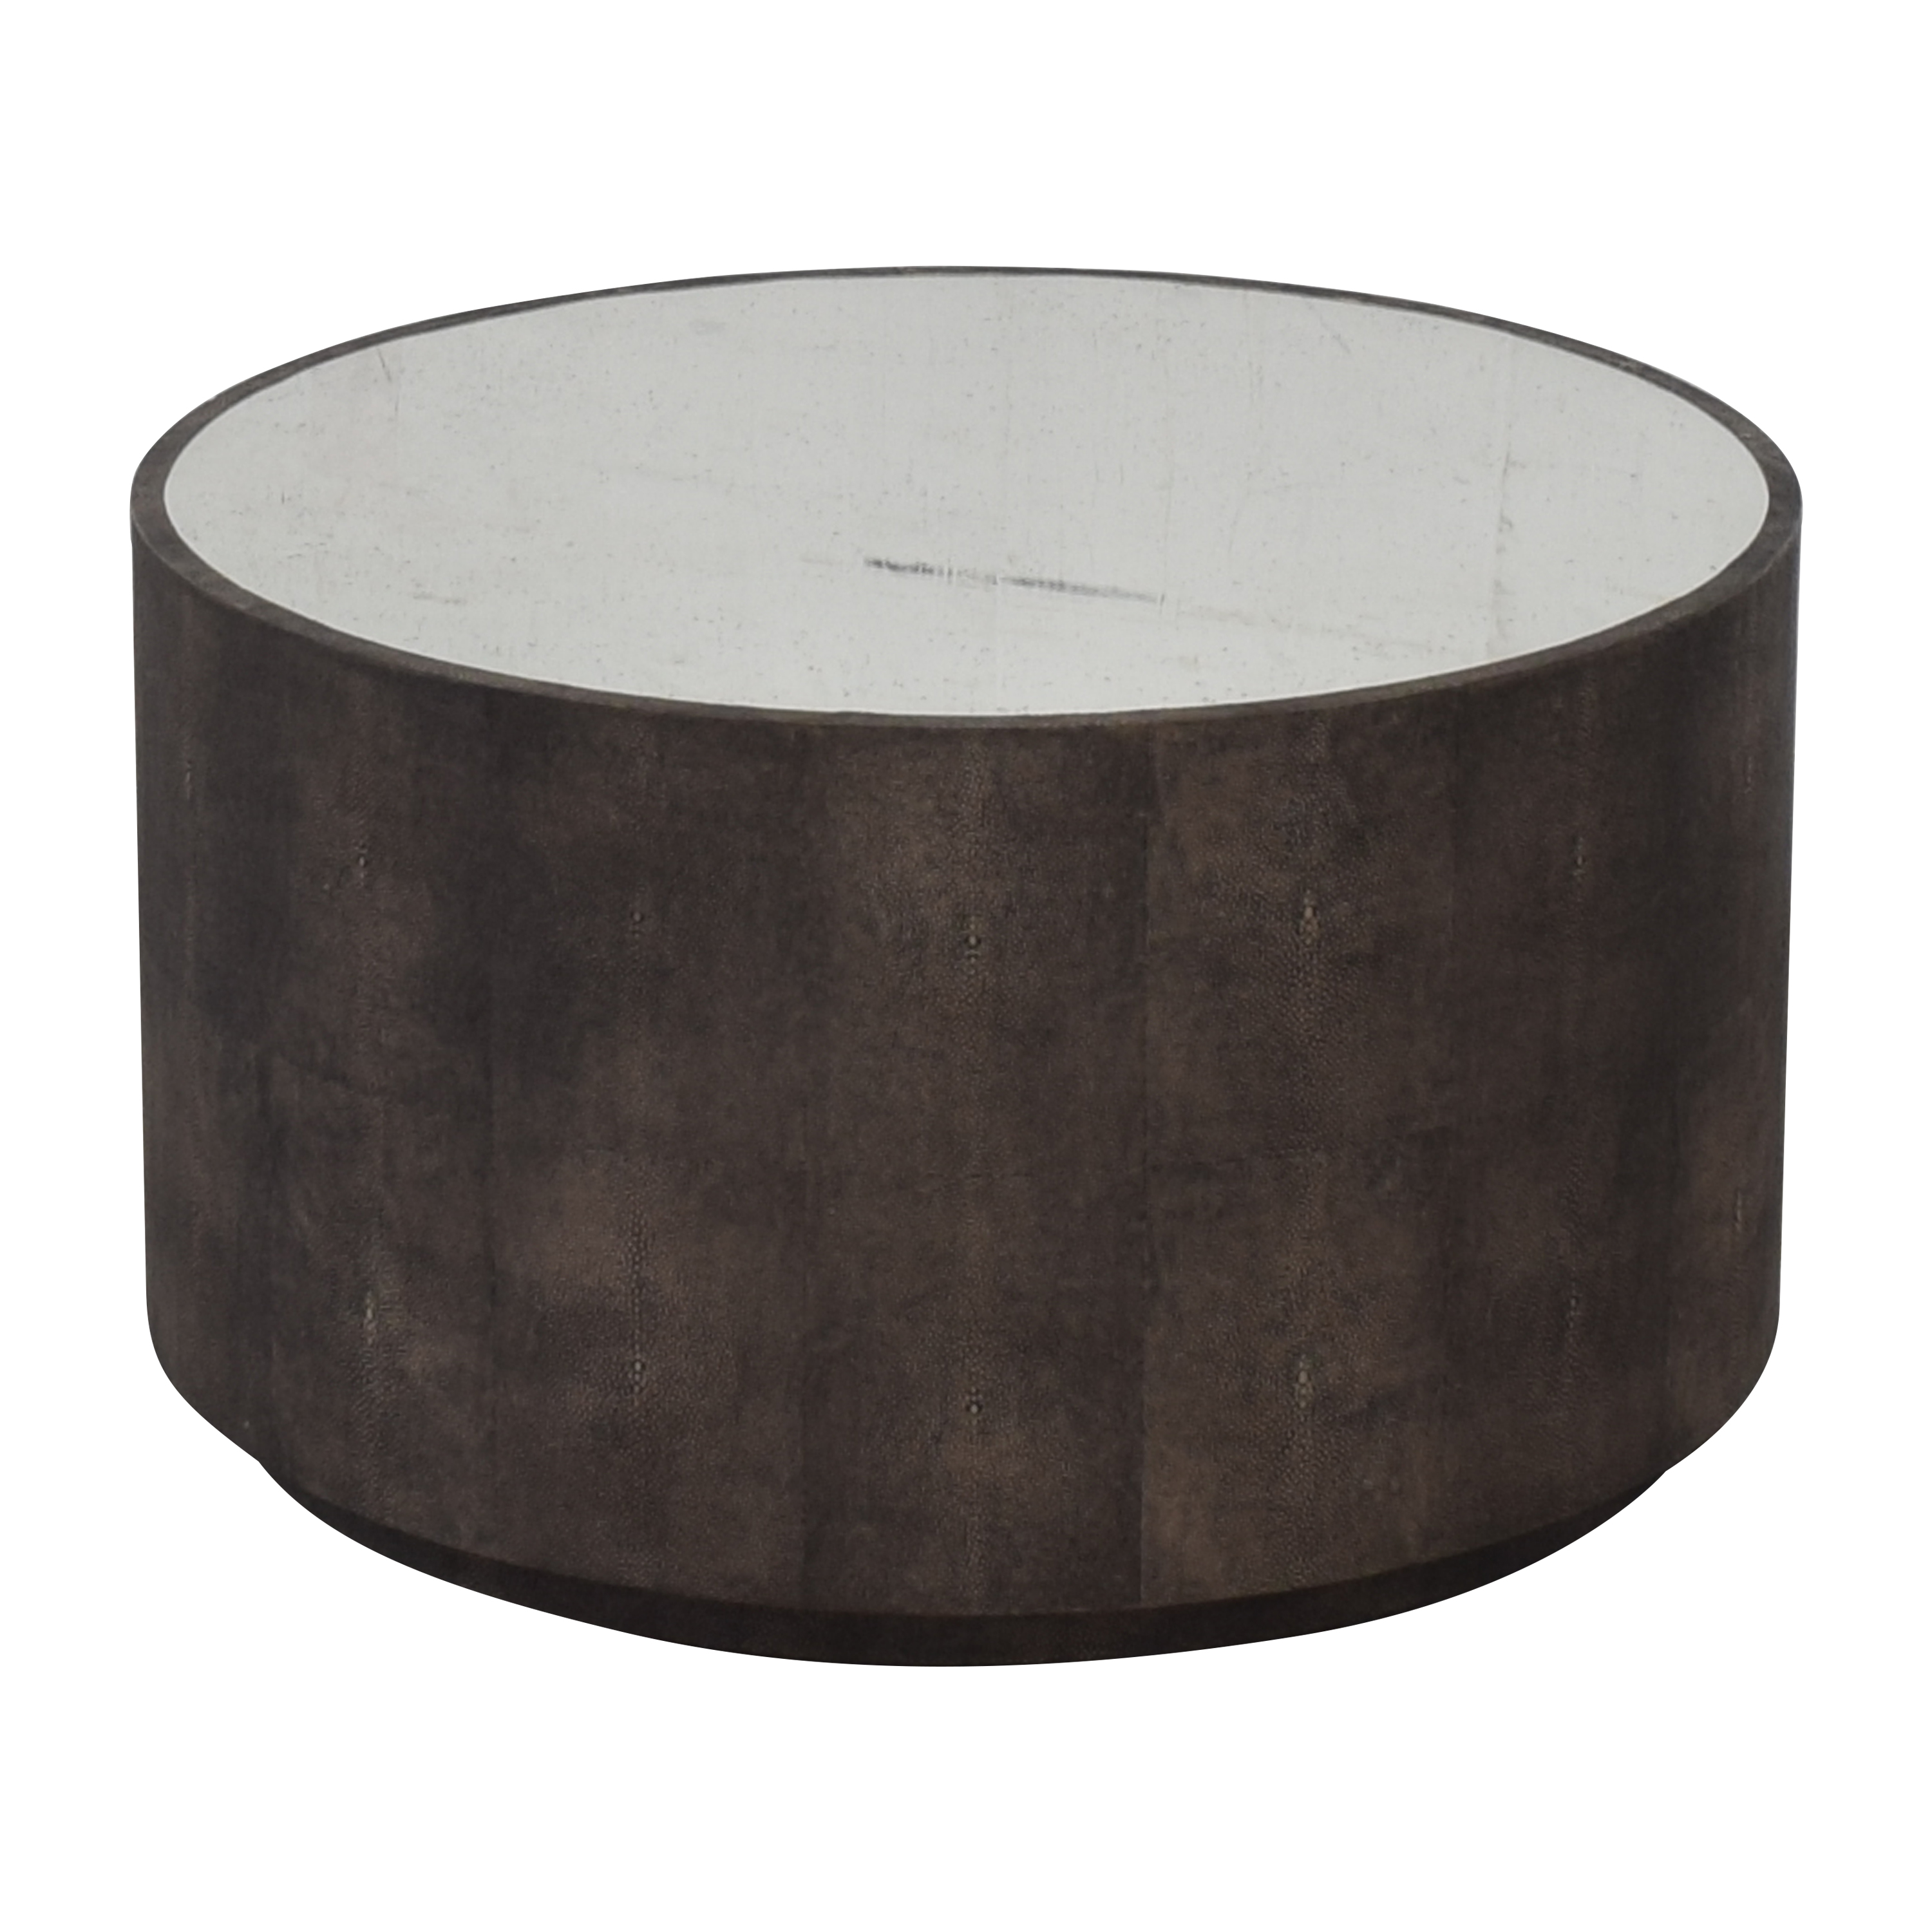 Mecox Gardens Round Coffee Table / Coffee Tables